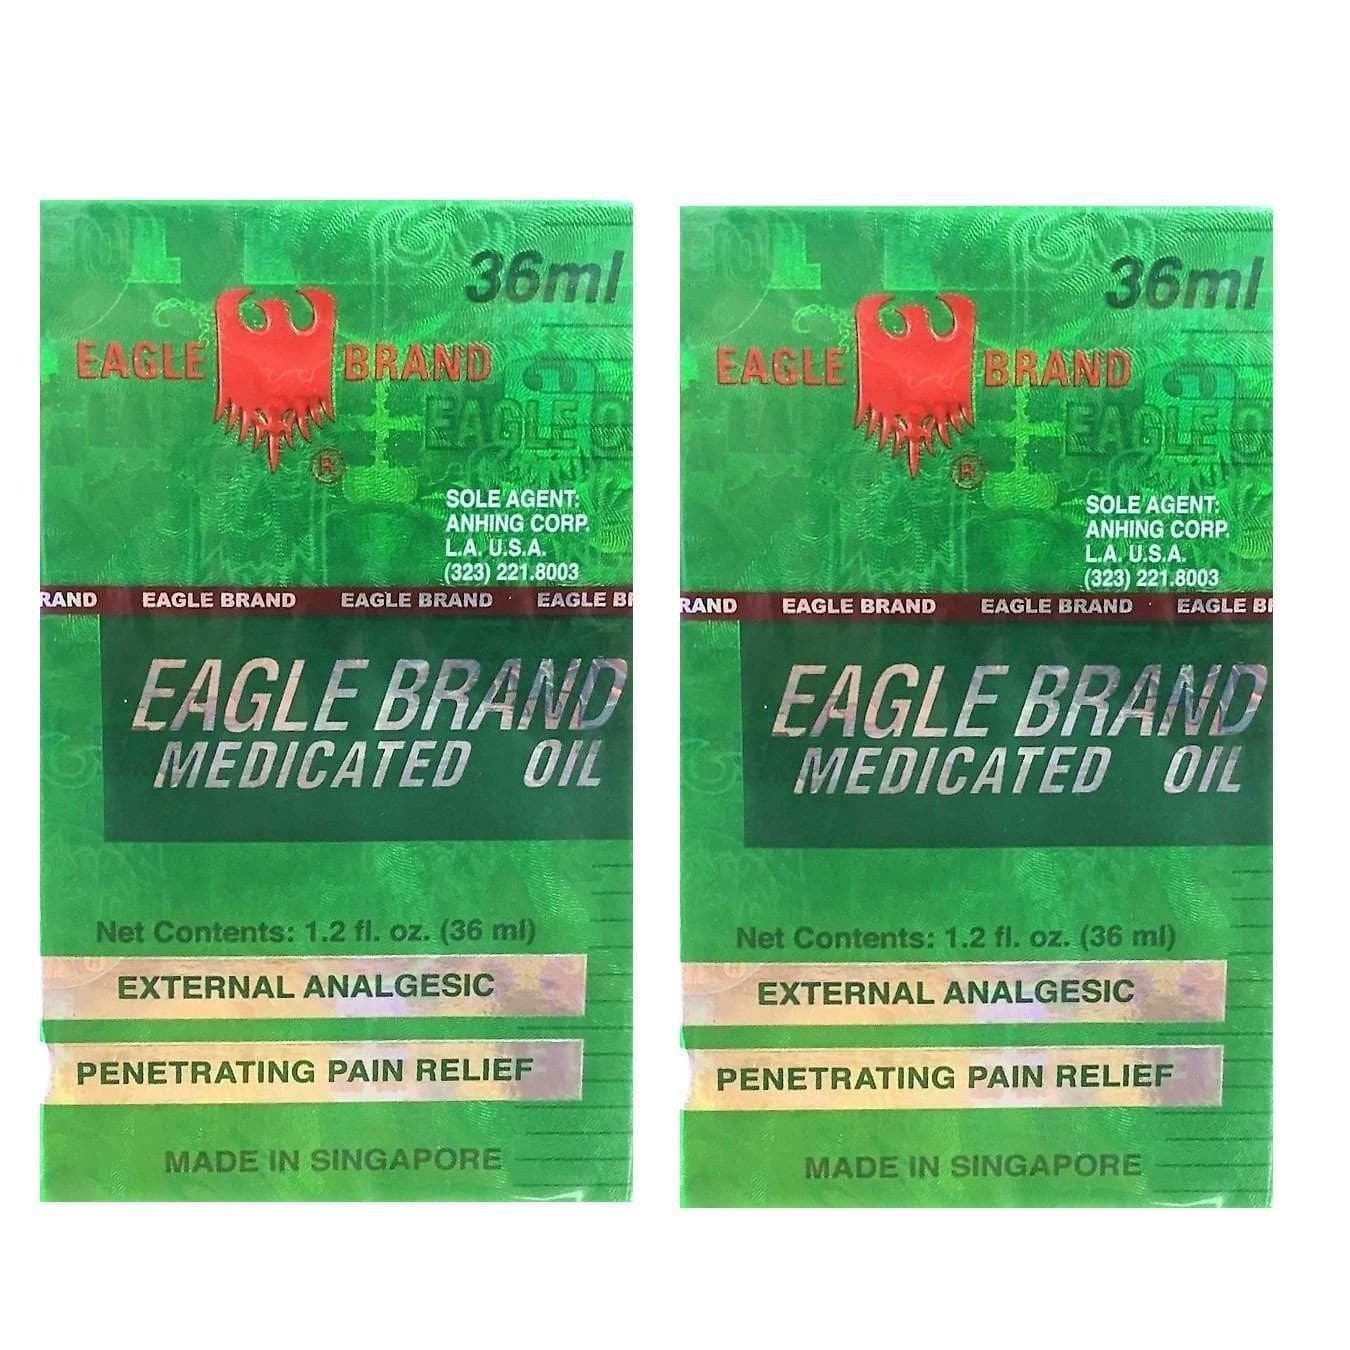 2 Bottles Eagle Brand Medicated Oil, Large Size (1.2oz/36ml)-Buy at New Green Nutrition